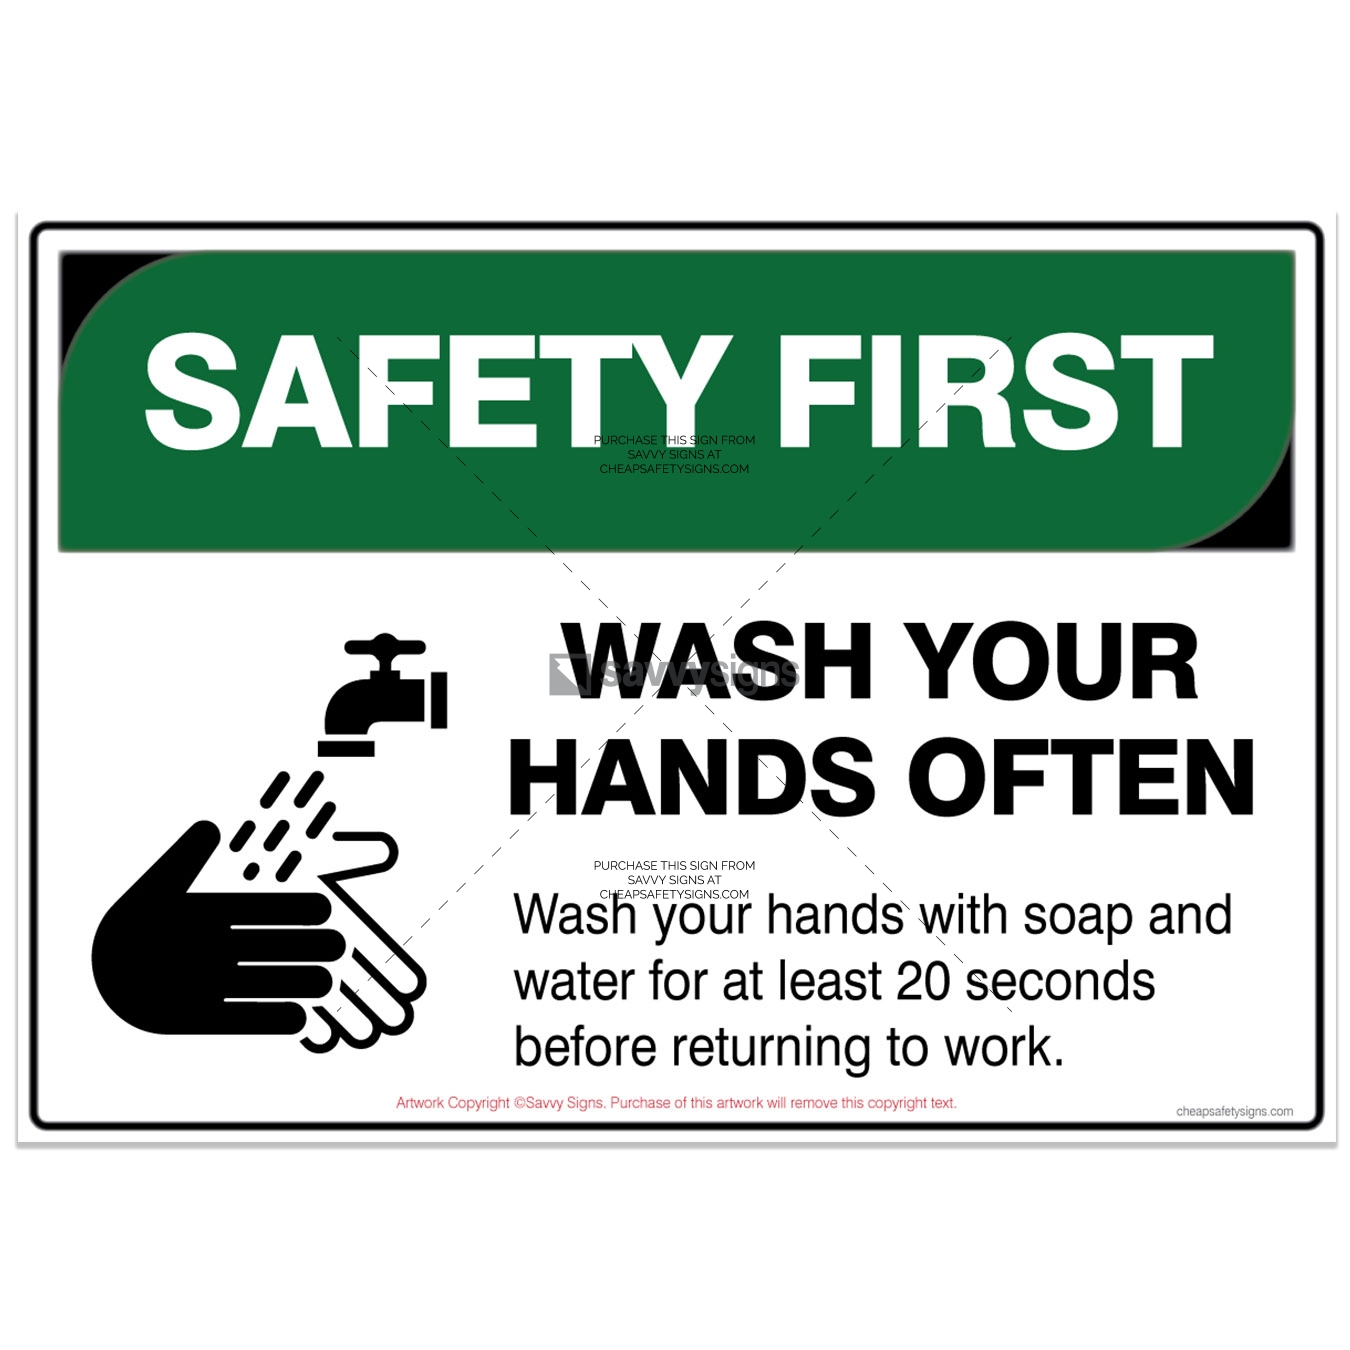 SSSFCOV3L010-COVID19-SAFETY-FIRST-Wash-your-hands-often-Safety-Signs_vsq2